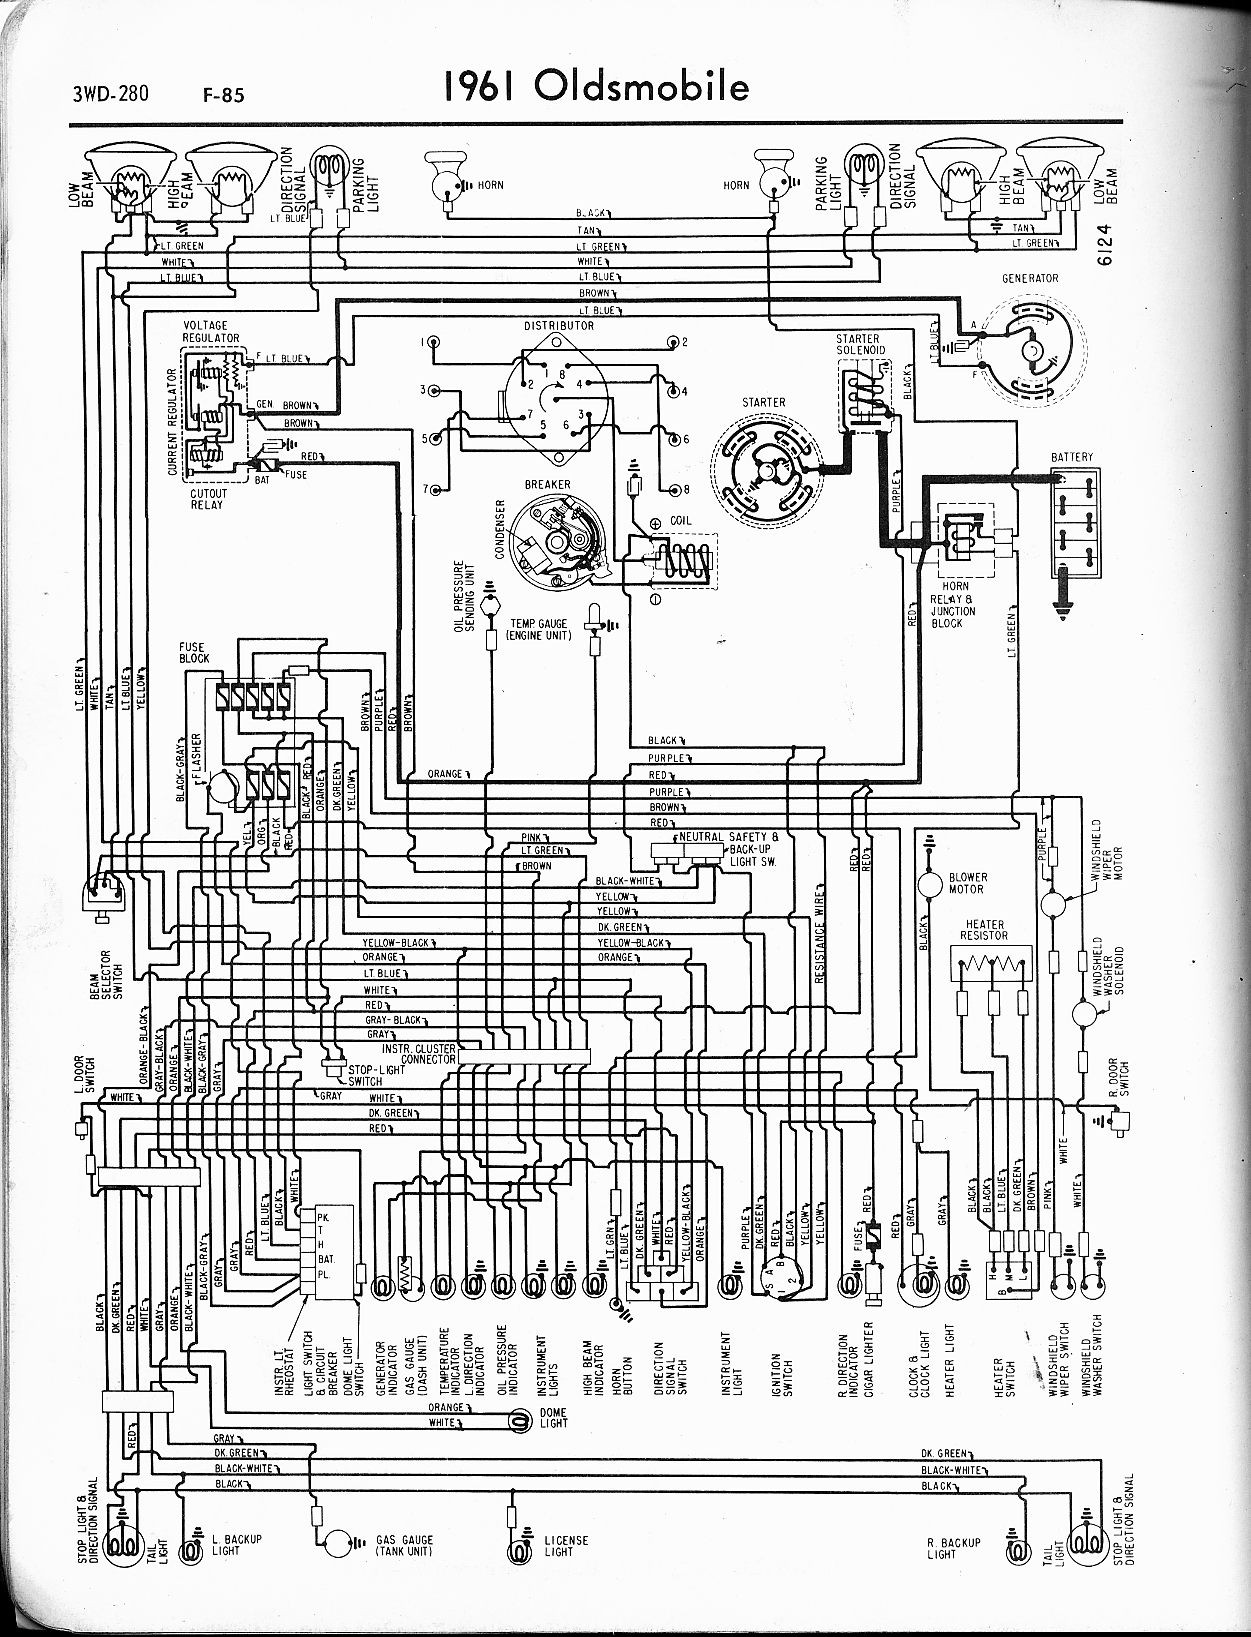 oldsmobile cutlass supreme wiring diagram 16 2 sg dbd de u2022 rh 16 2 sg  dbd de 1968 oldsmobile cutlass wiring-diagram 1972 oldsmobile cutlass wiring-